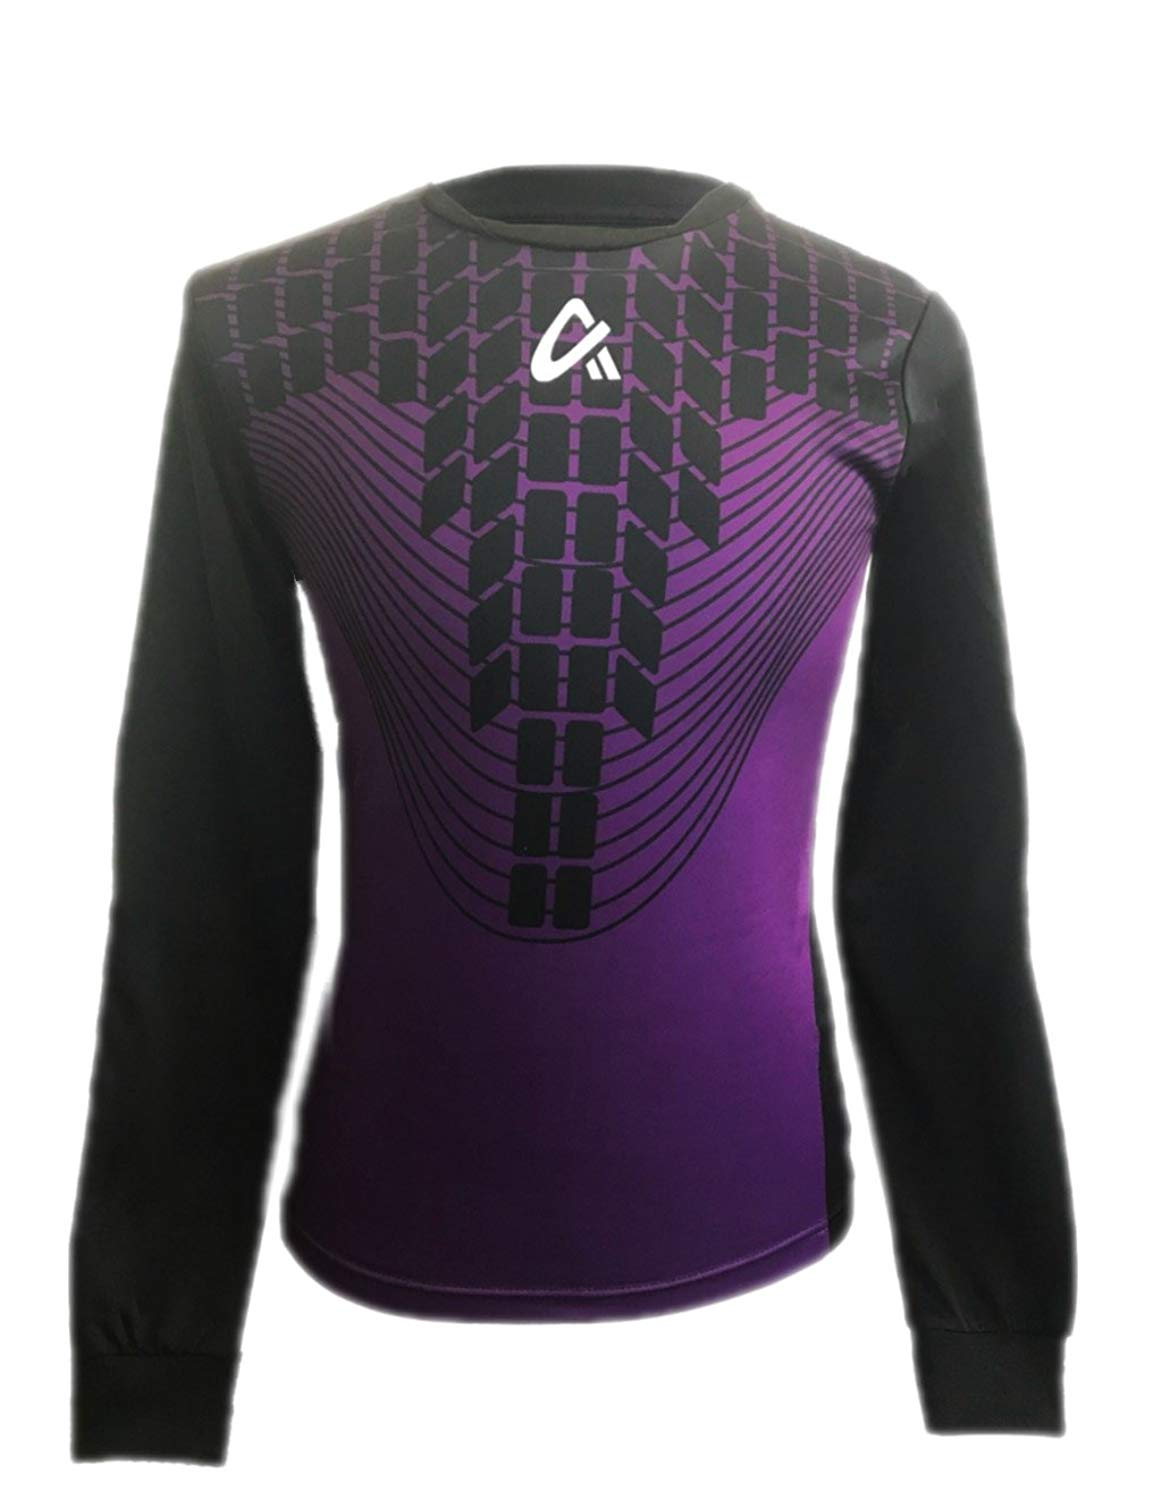 9d2e17f18 Get Quotations · Arriba Goalkeeper Jersey and Shorts